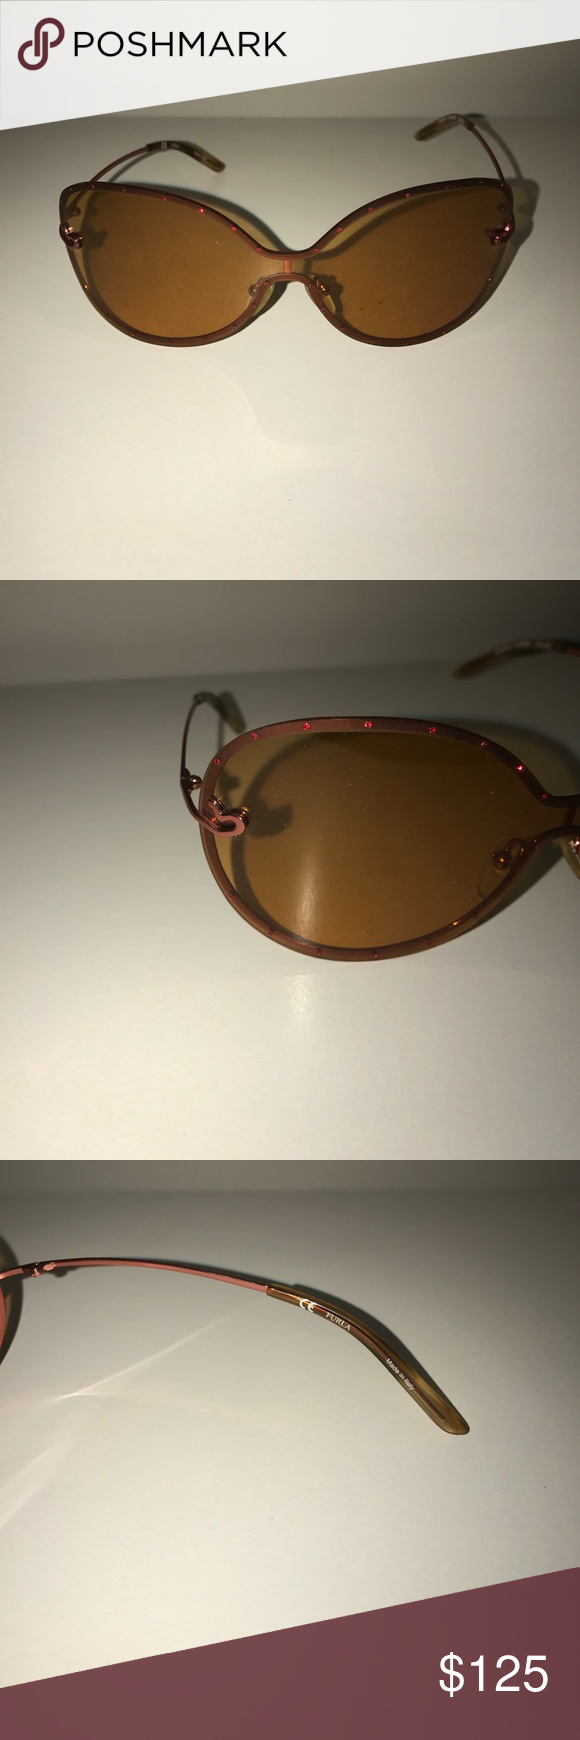 7b3495dd323 Brand-new authentic Furla sunglasses 100% authentic brand-new for Furla chrome  hearts aviator sunglasses brown frame with red Swarovski crystals accenting  ...